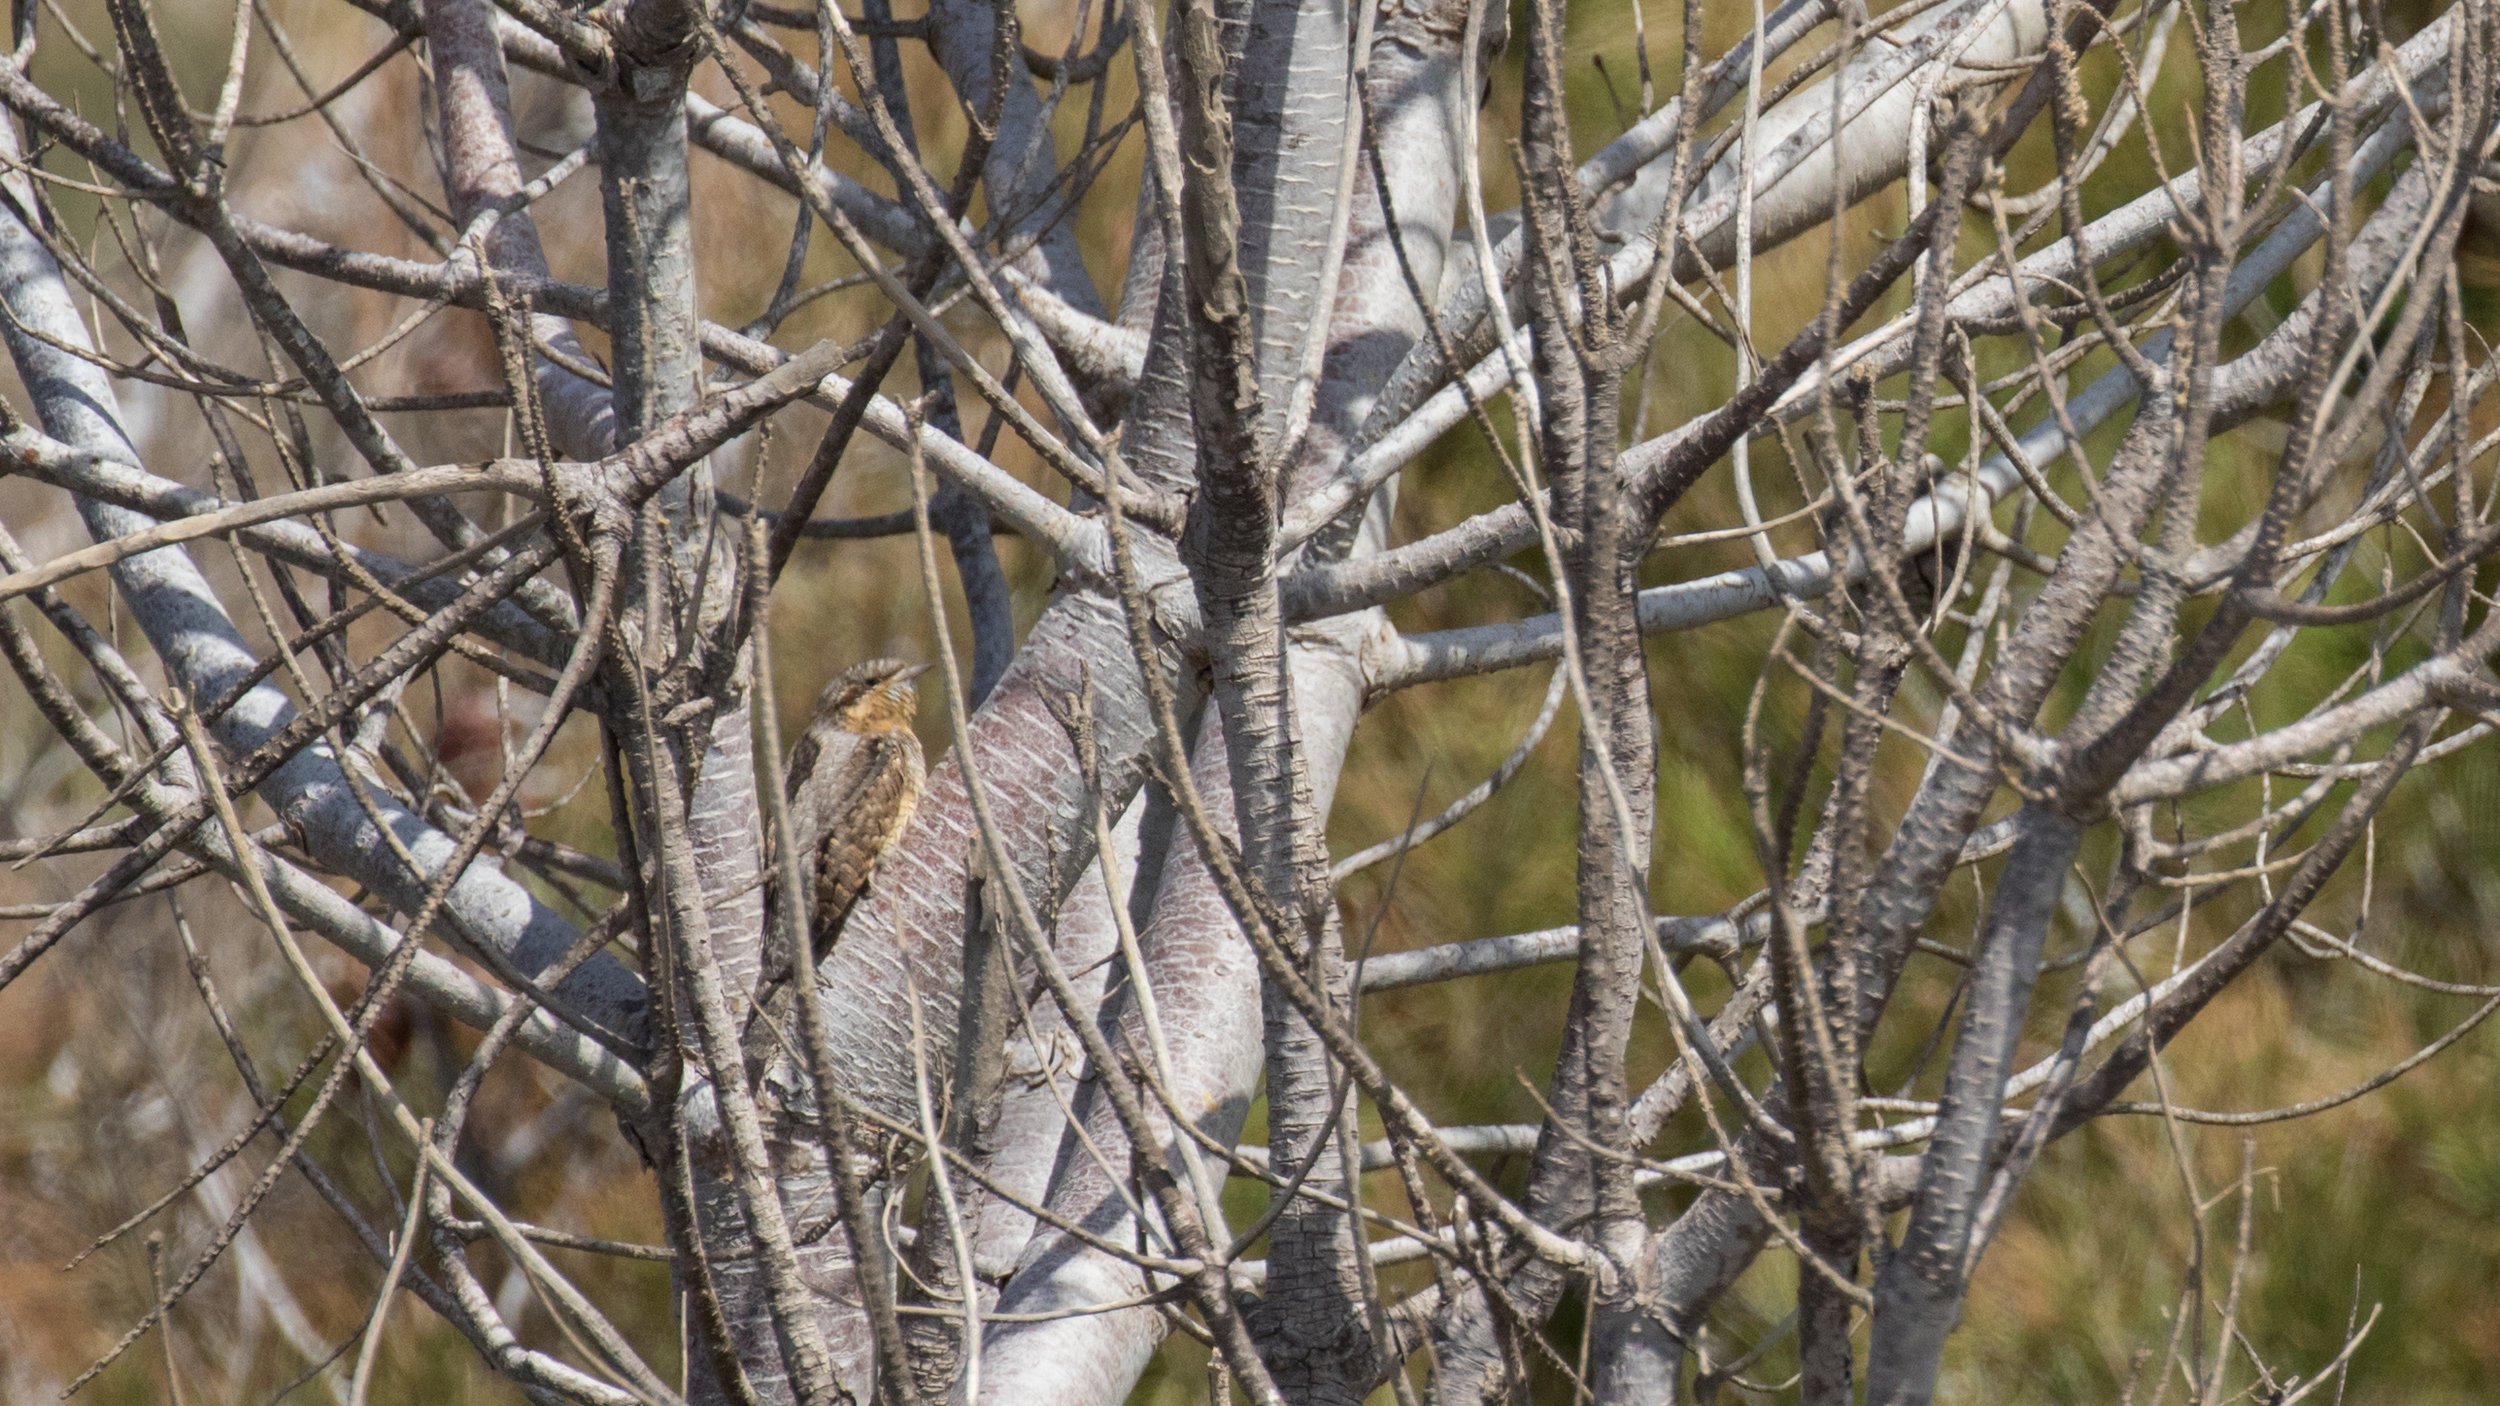 Eurasian Wryneck (Jynx torquilla) in Malta. April 2016. Not baited. Not called in.